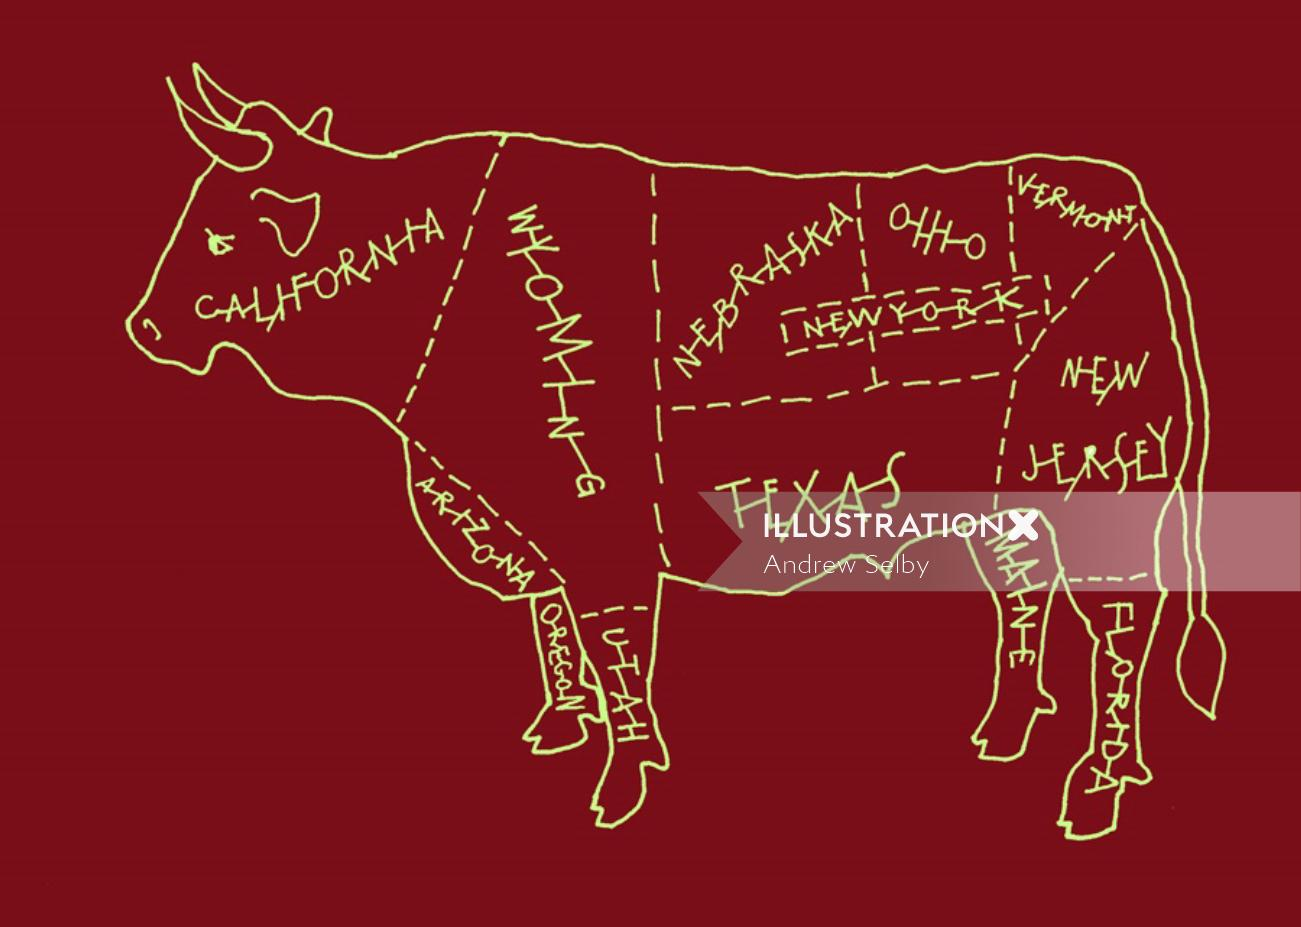 US Bull illustration by Andrew Selby